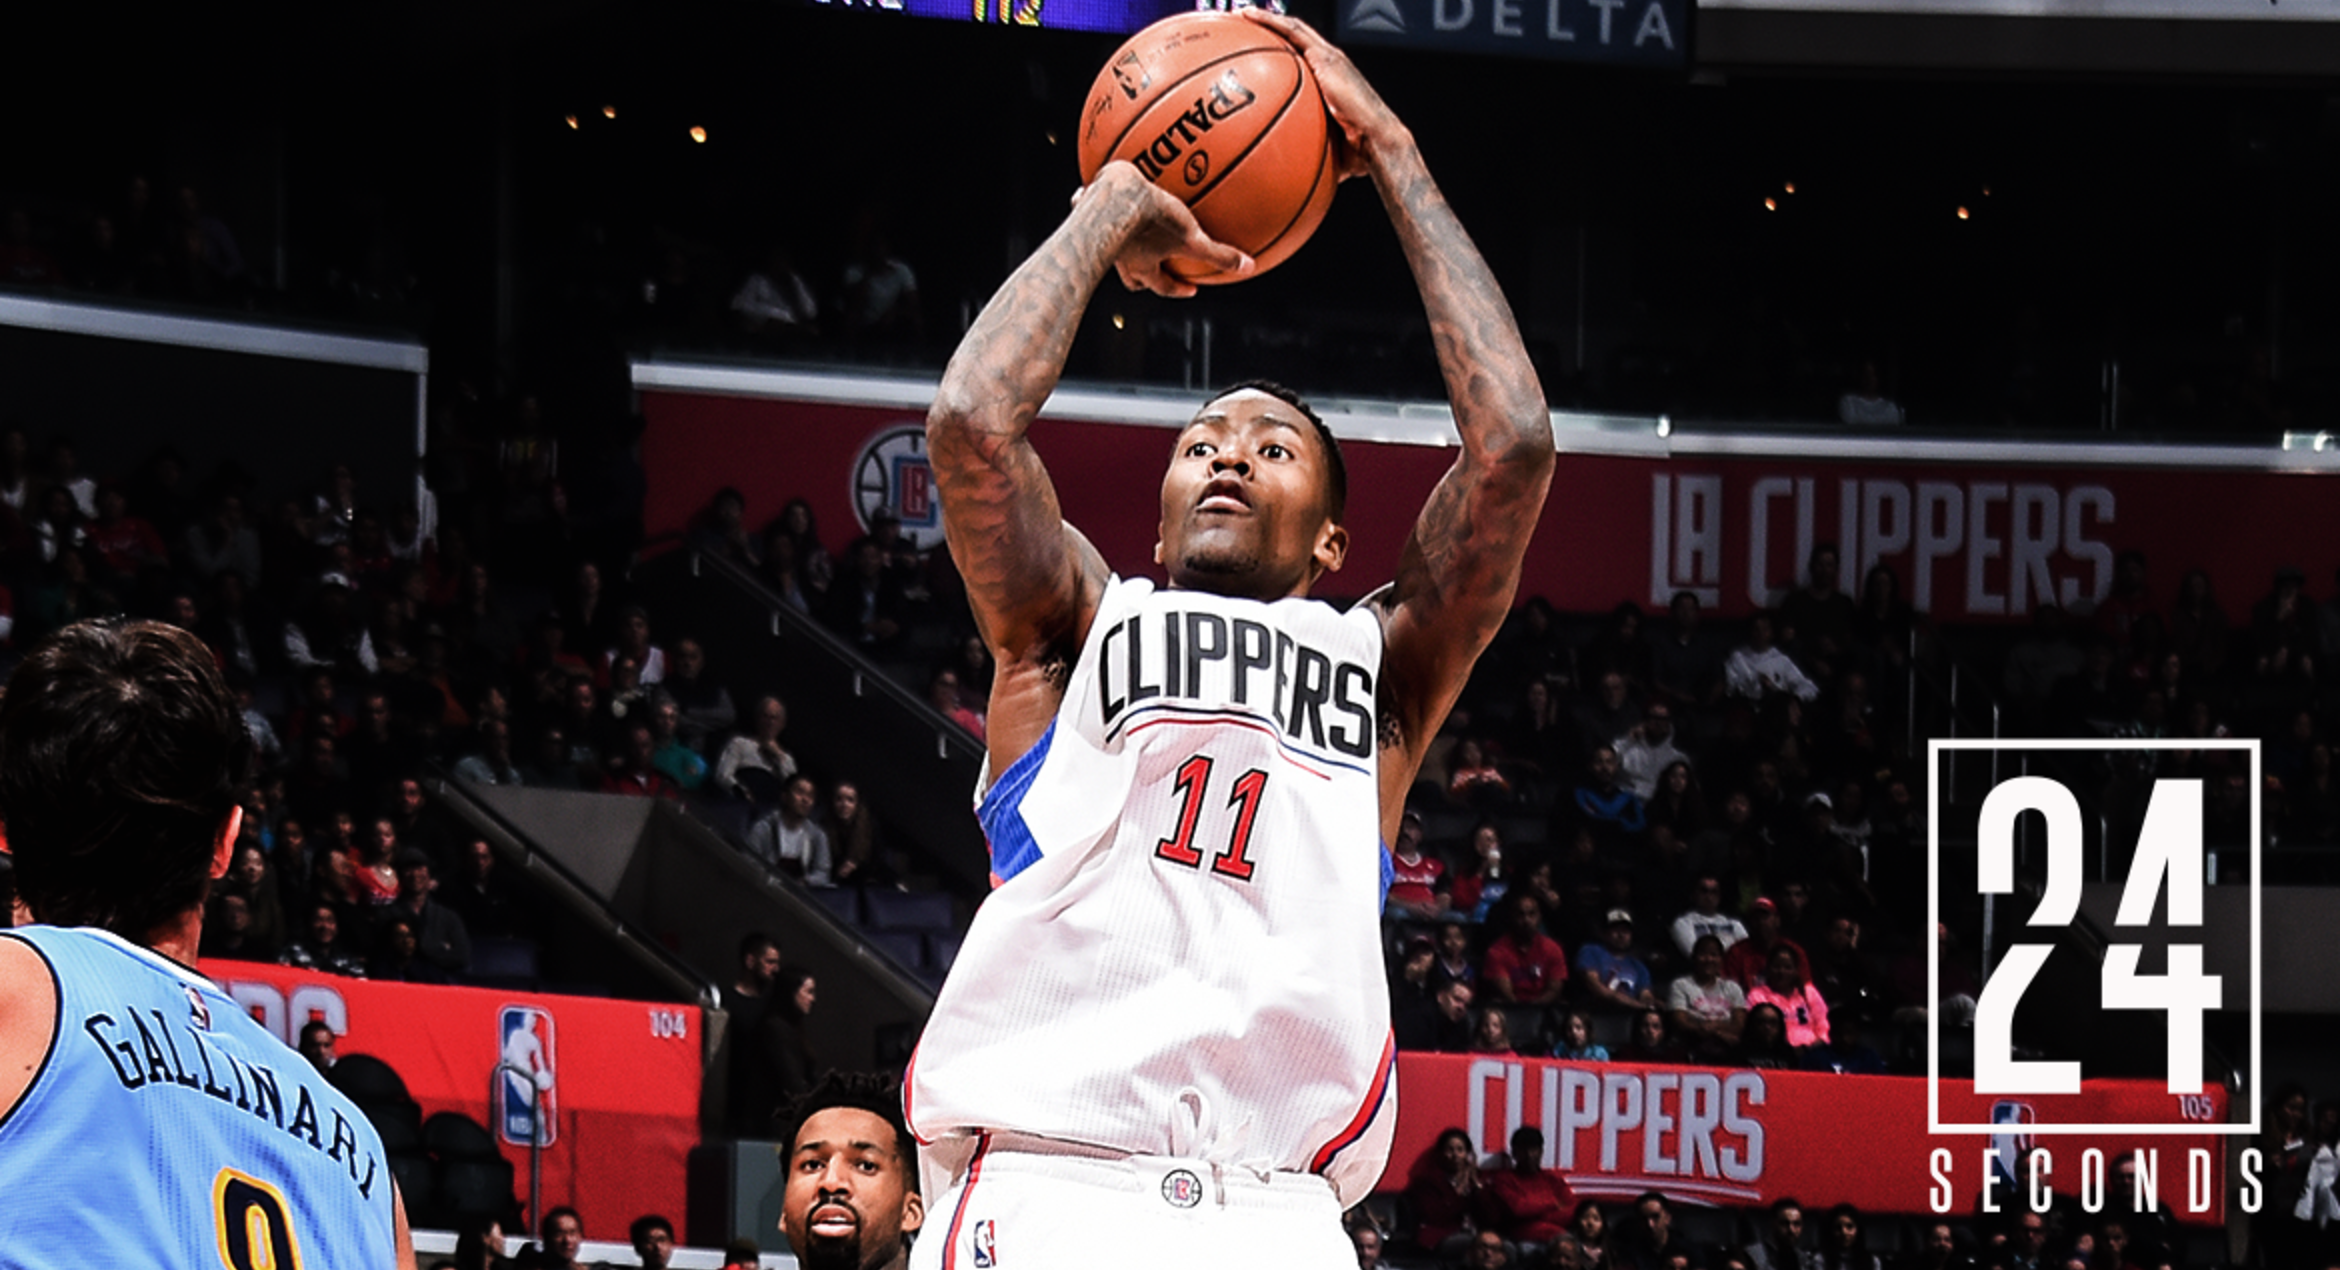 24 Seconds With … Jamal Crawford